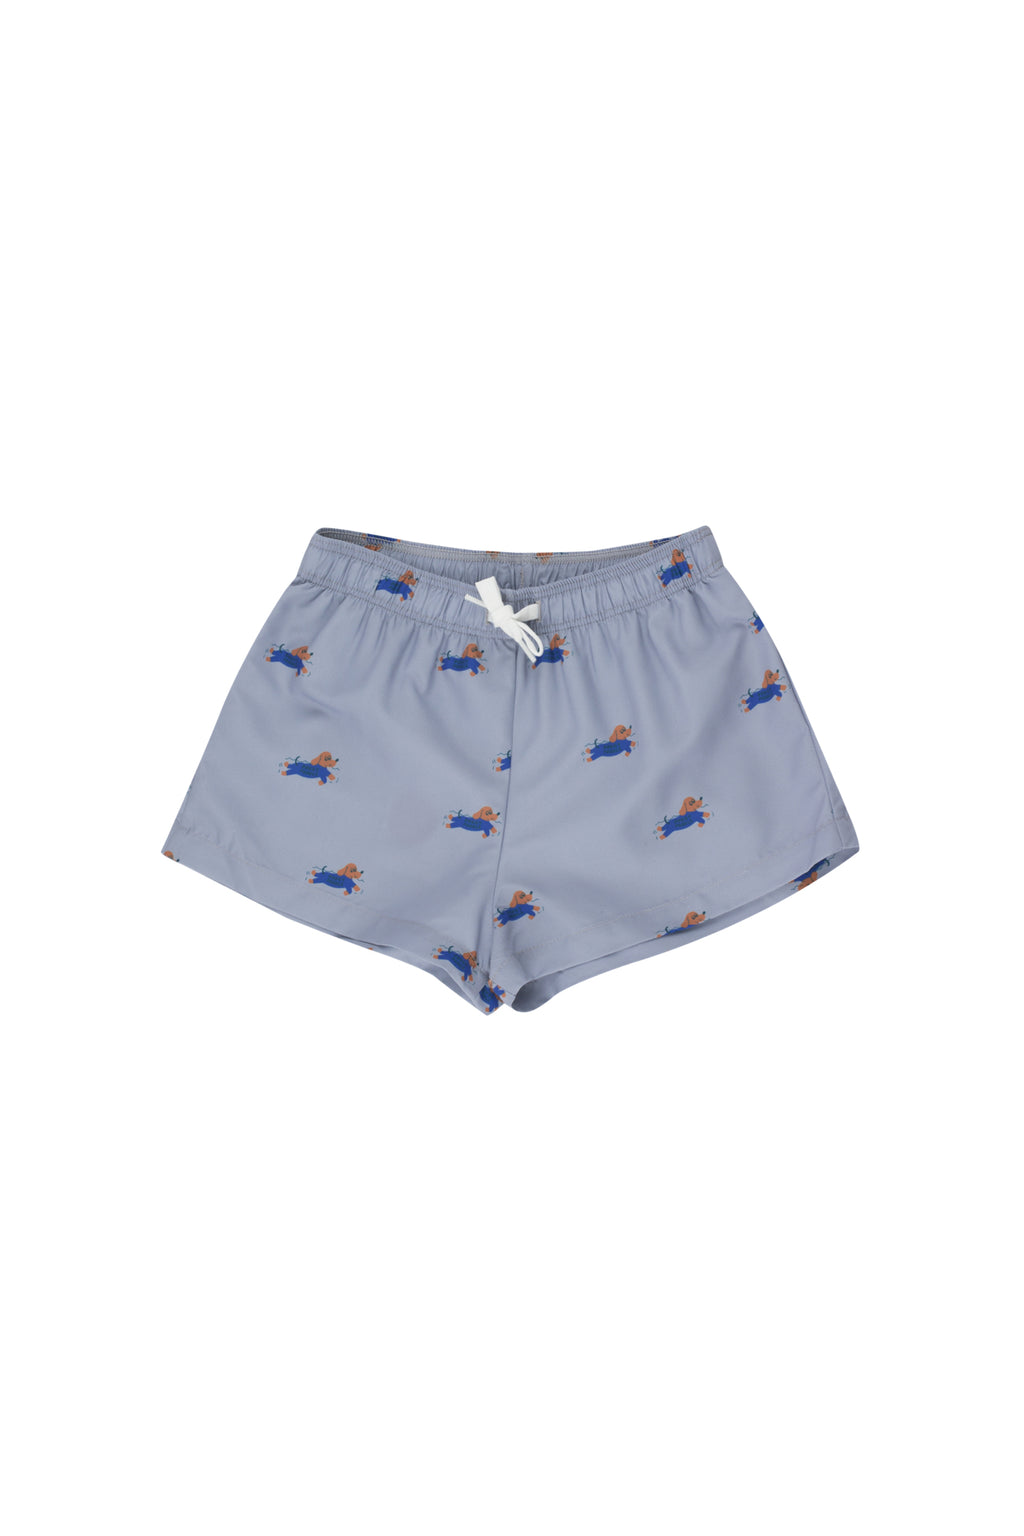 Tiny Cottons Doggy Paddle Trunks - Summer Grey/Iris Blue